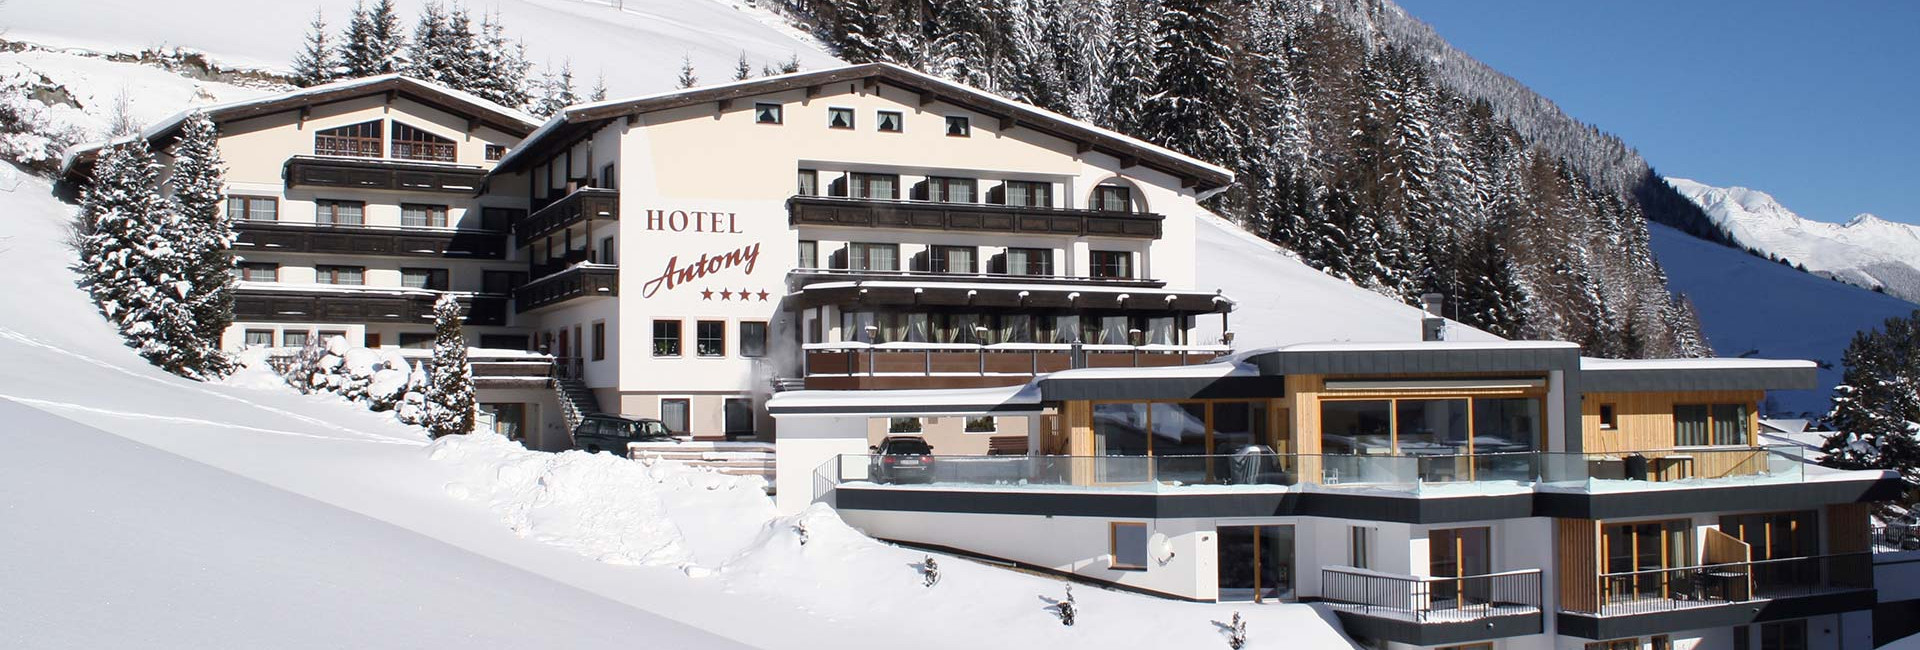 Anfrage Hotel Antony in Ischgl